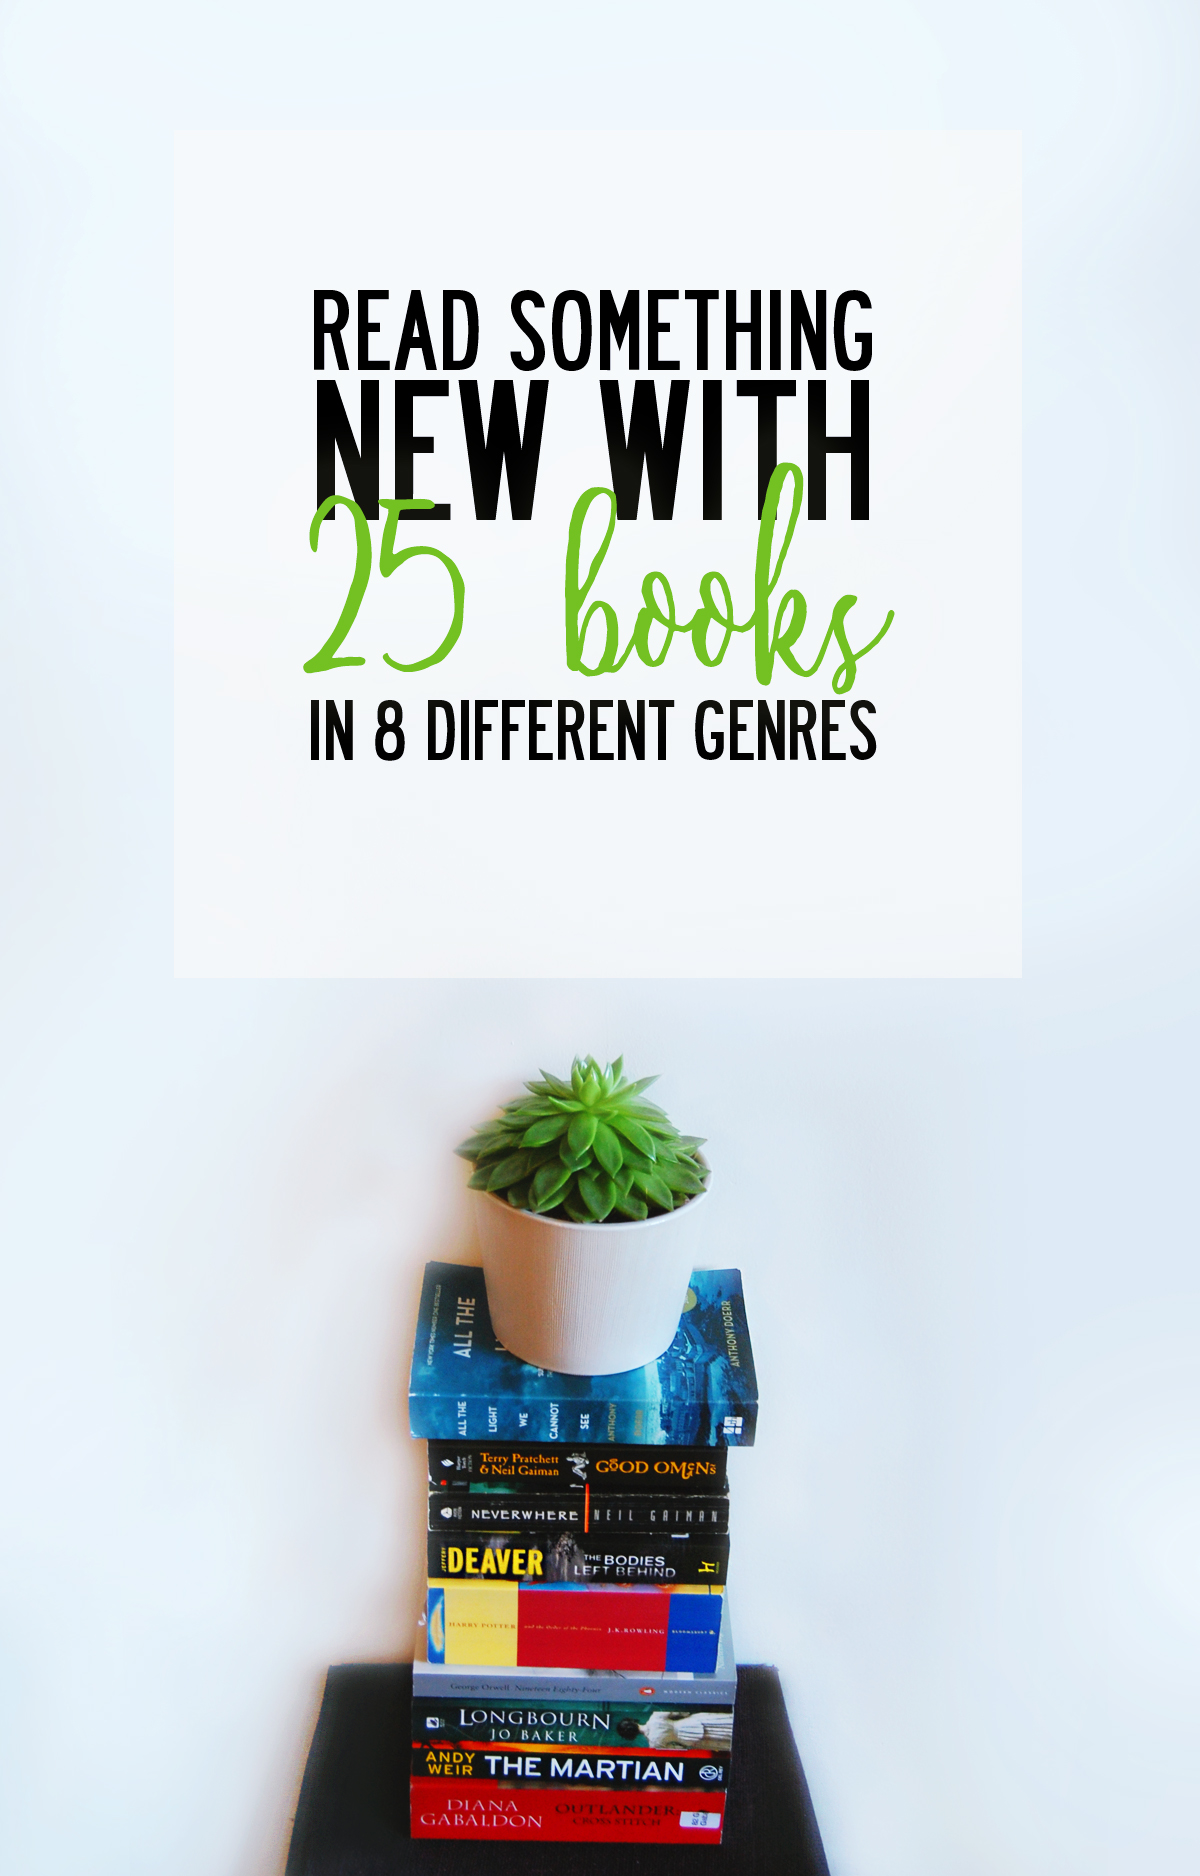 Read something new with 25 books in 8 genres